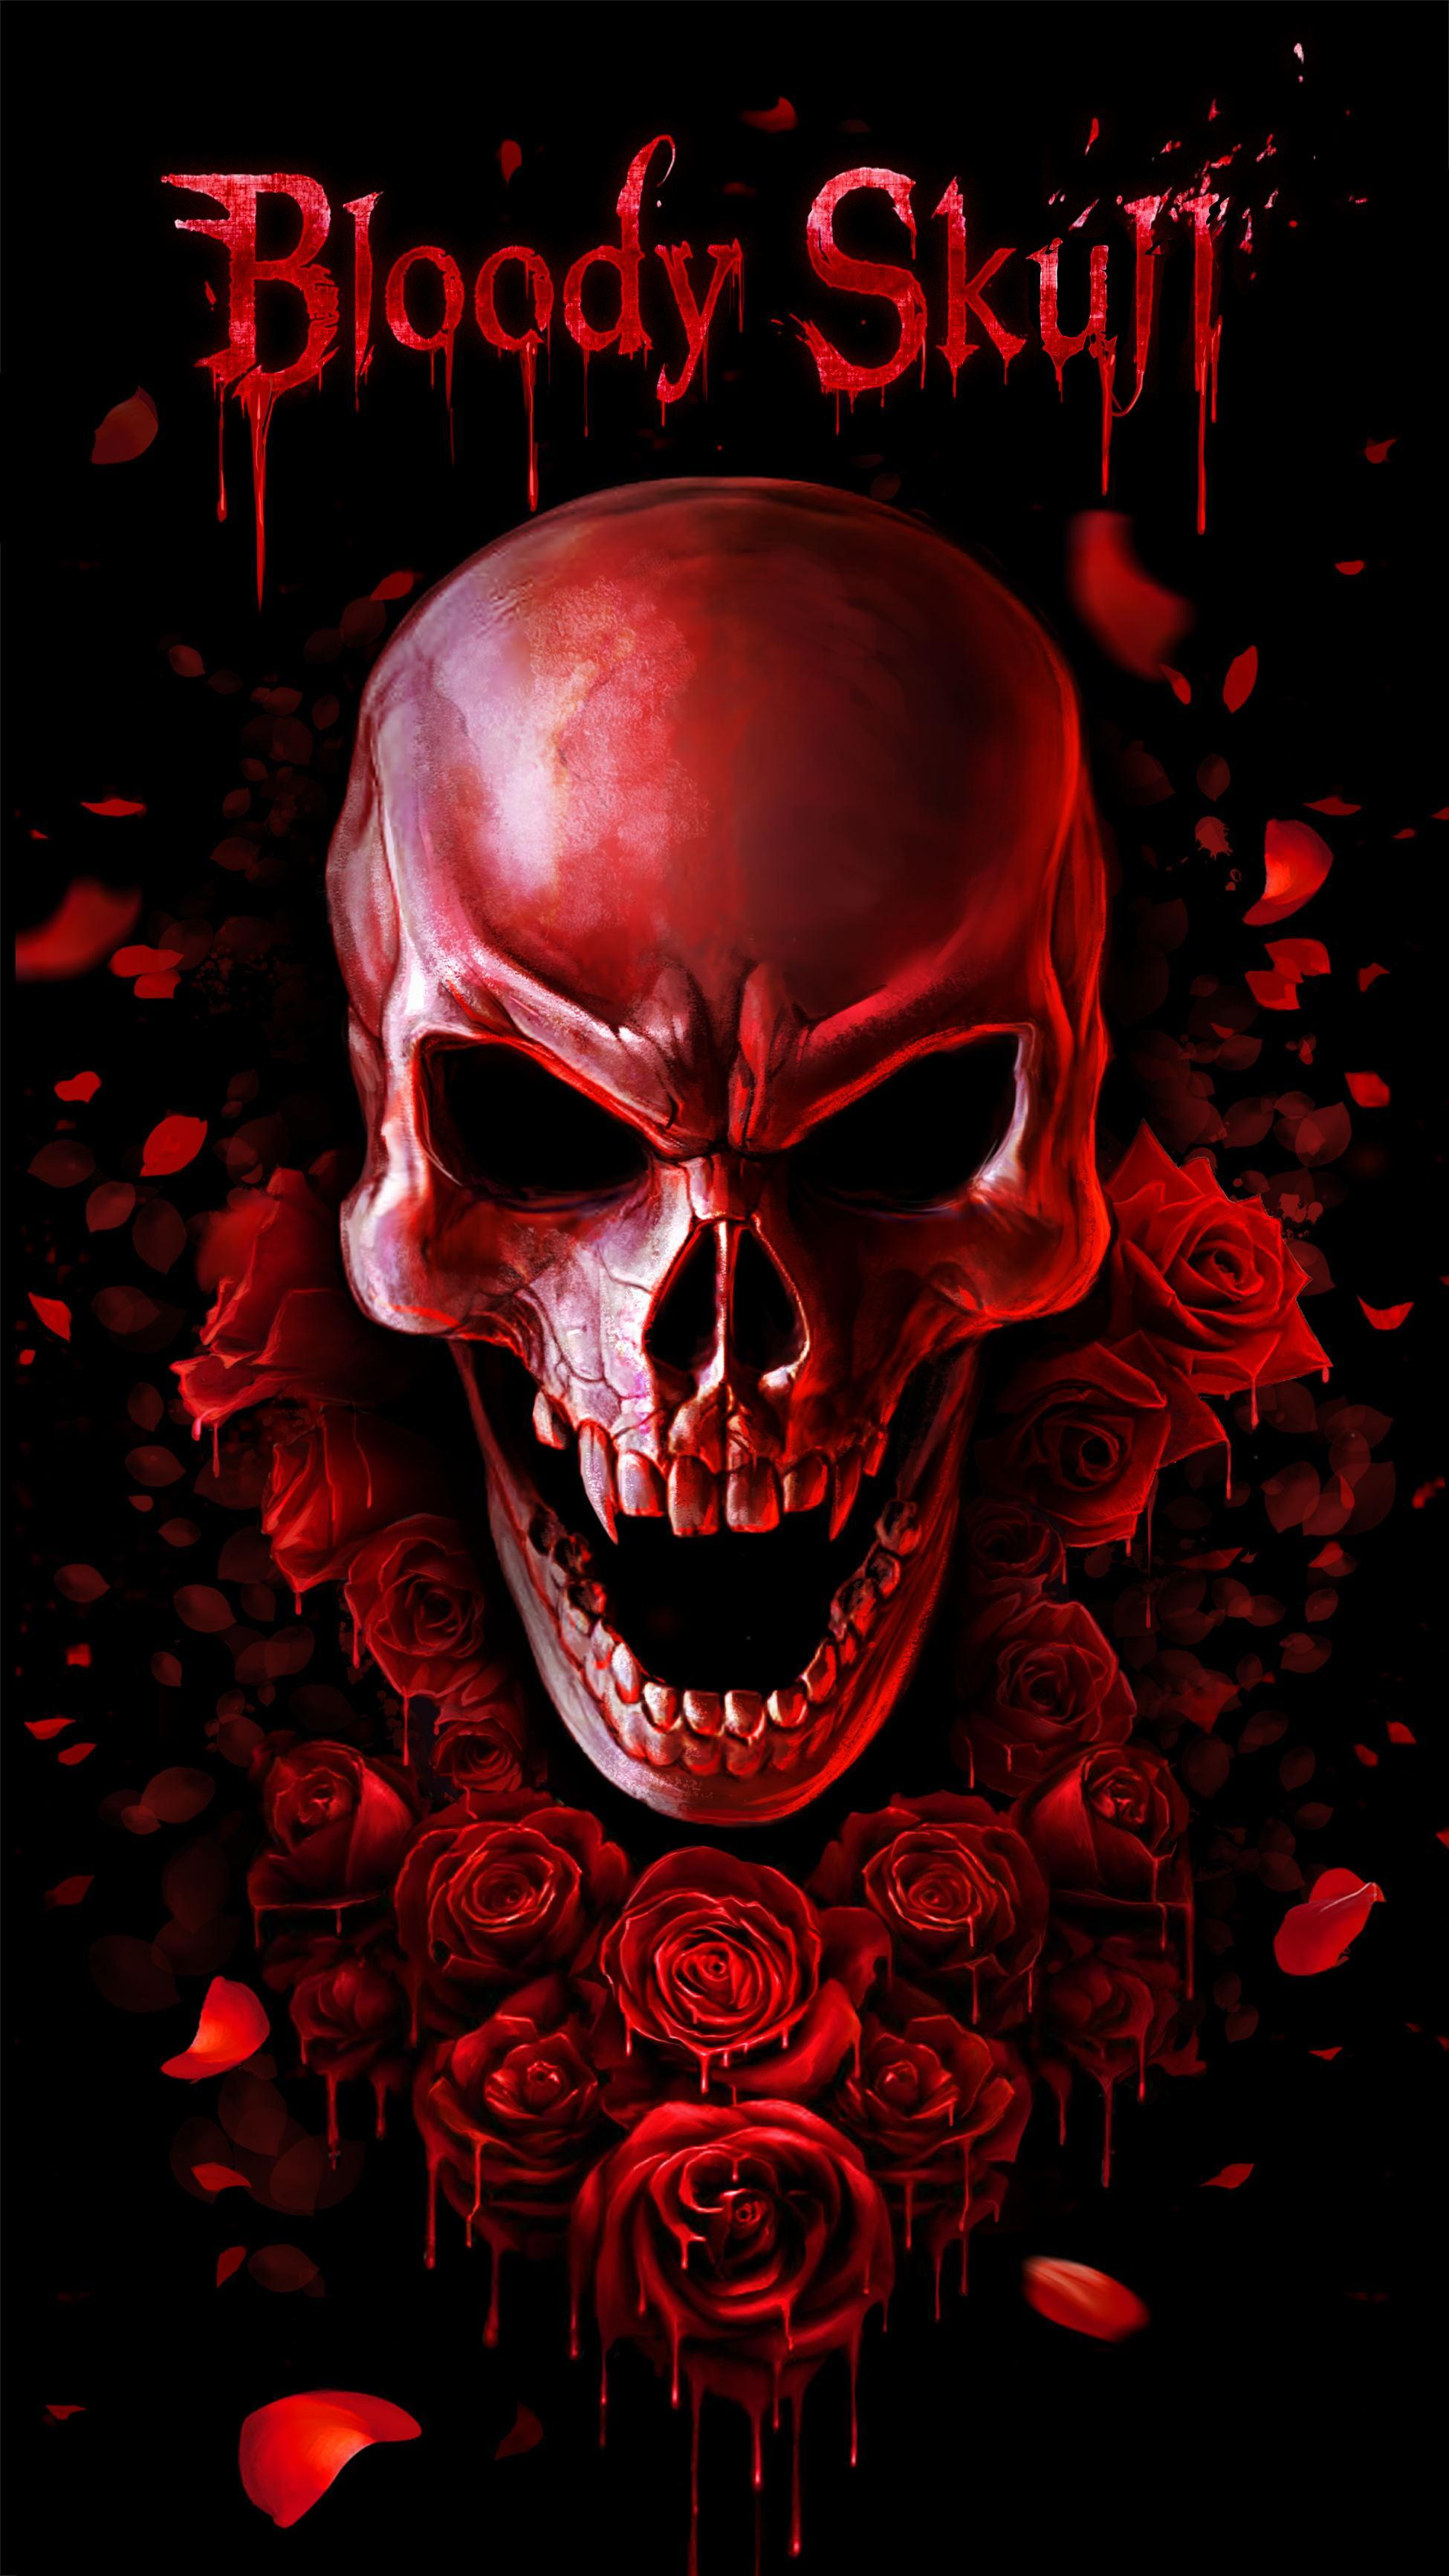 Red Blood Skull Live Wallpaper For Android Apk Download